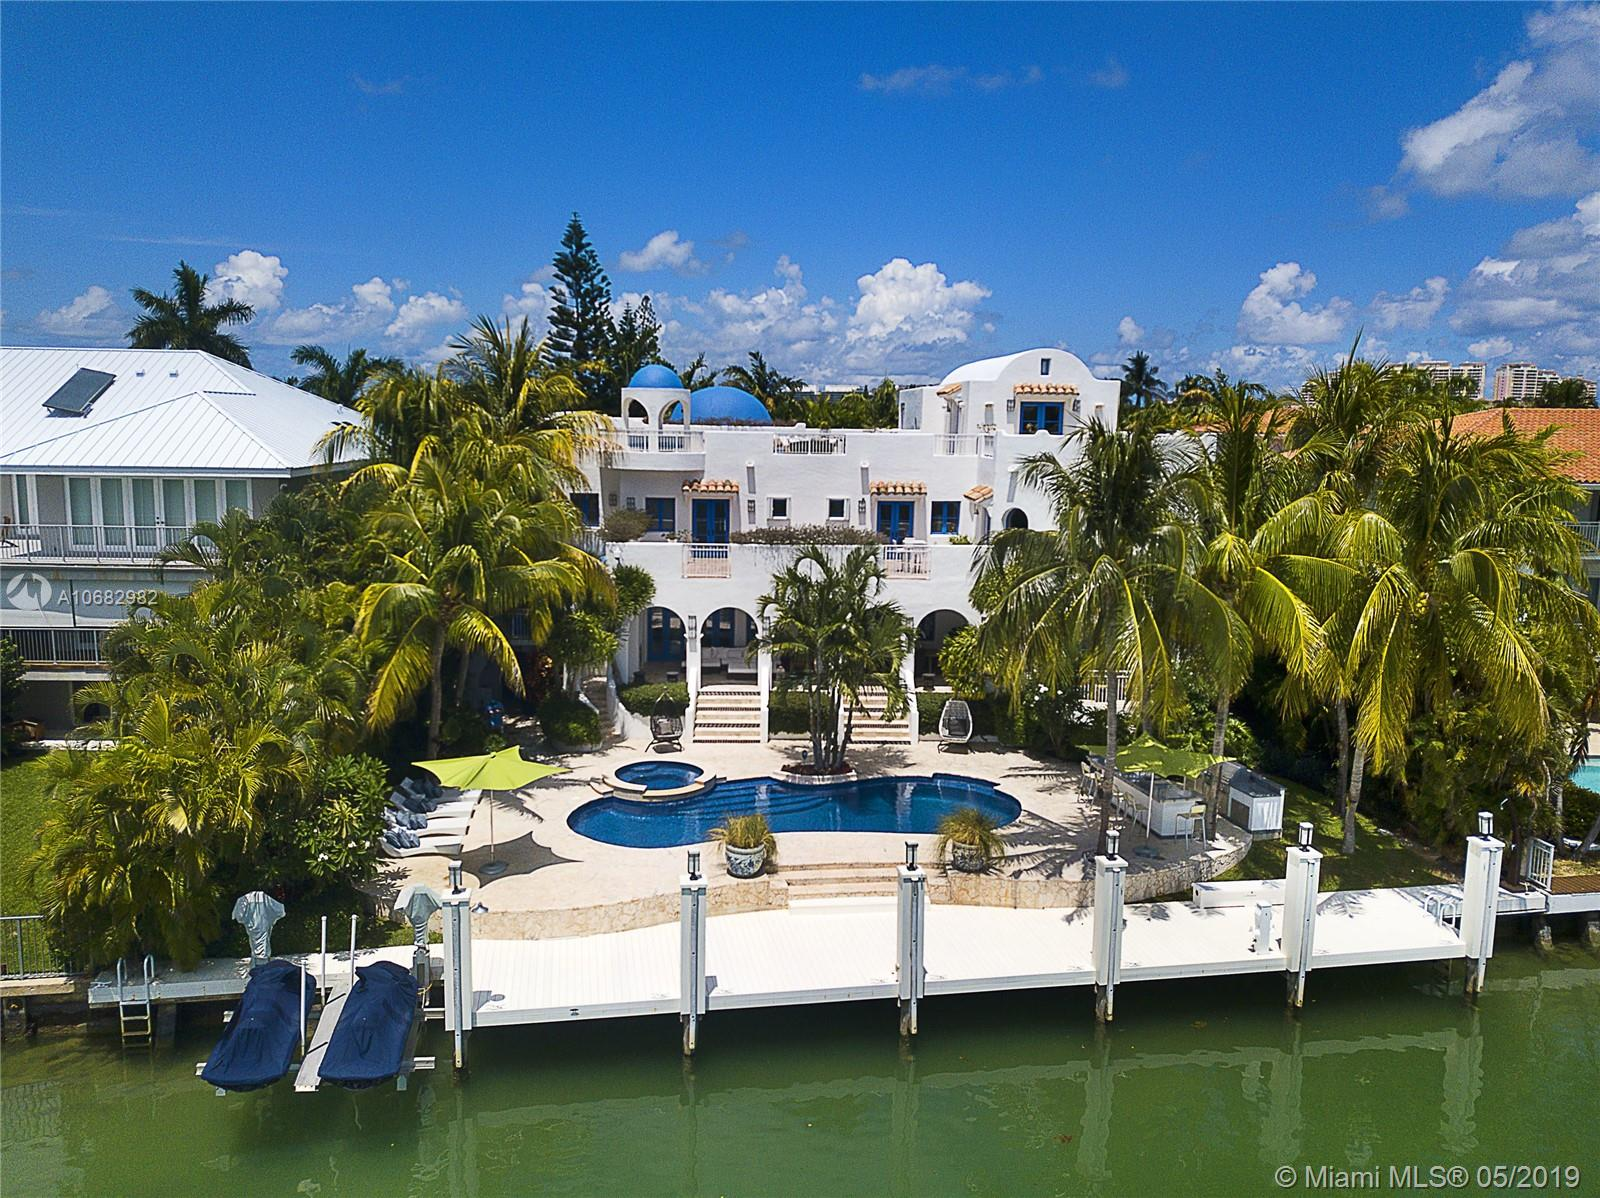 760 Harbor Dr, Key Biscayne, Florida